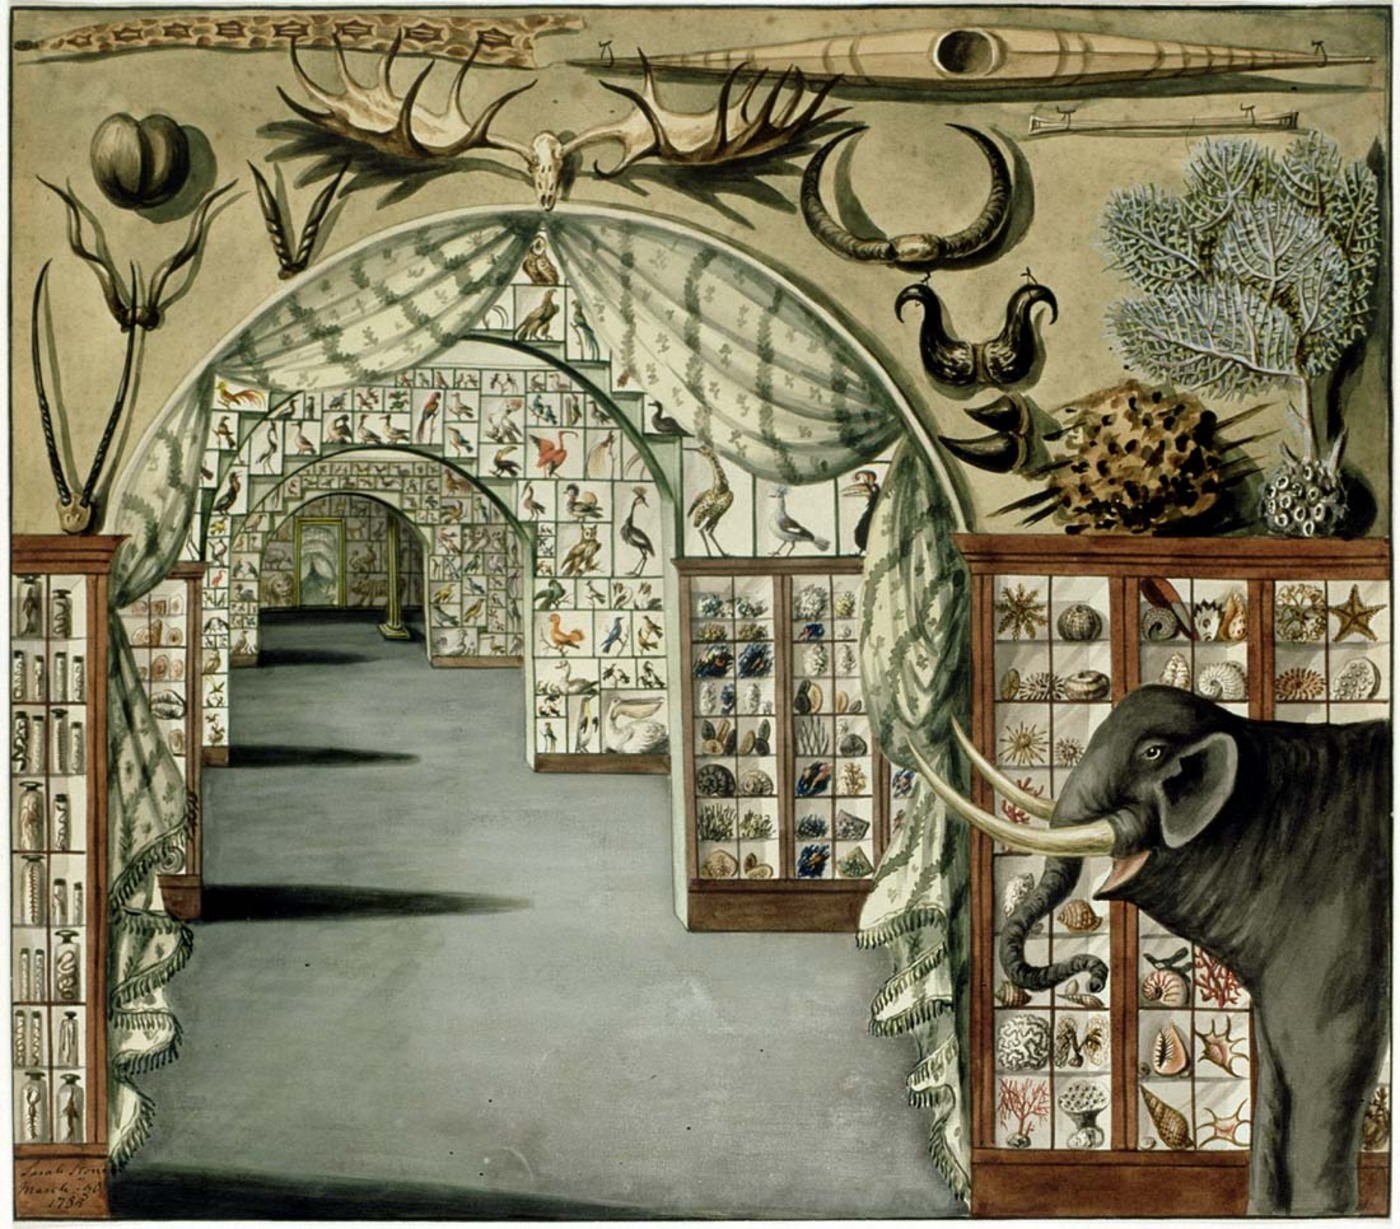 Perspective_interior_view_of_Sir_Ashton_Lever's_Museum_in_Leicester_Square,_London_March_30_1785._Watercolour_by_Sarah_Stone.jpg